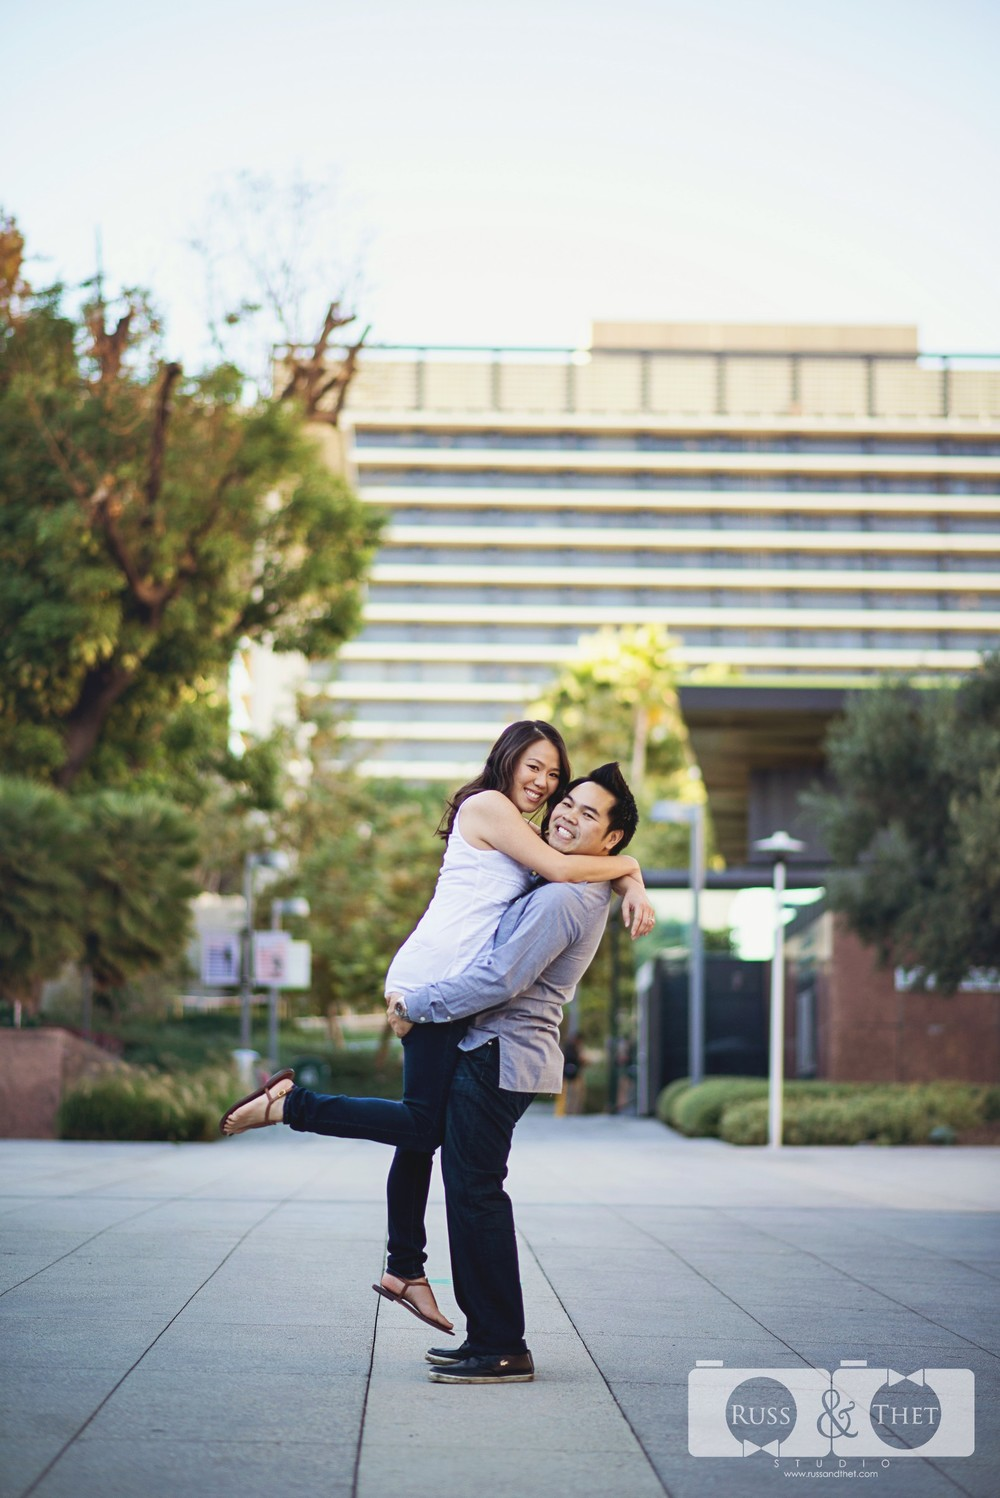 Emero_Lucinda_Downtown_Los_Angeles_Engagement_Photographer (5).jpg